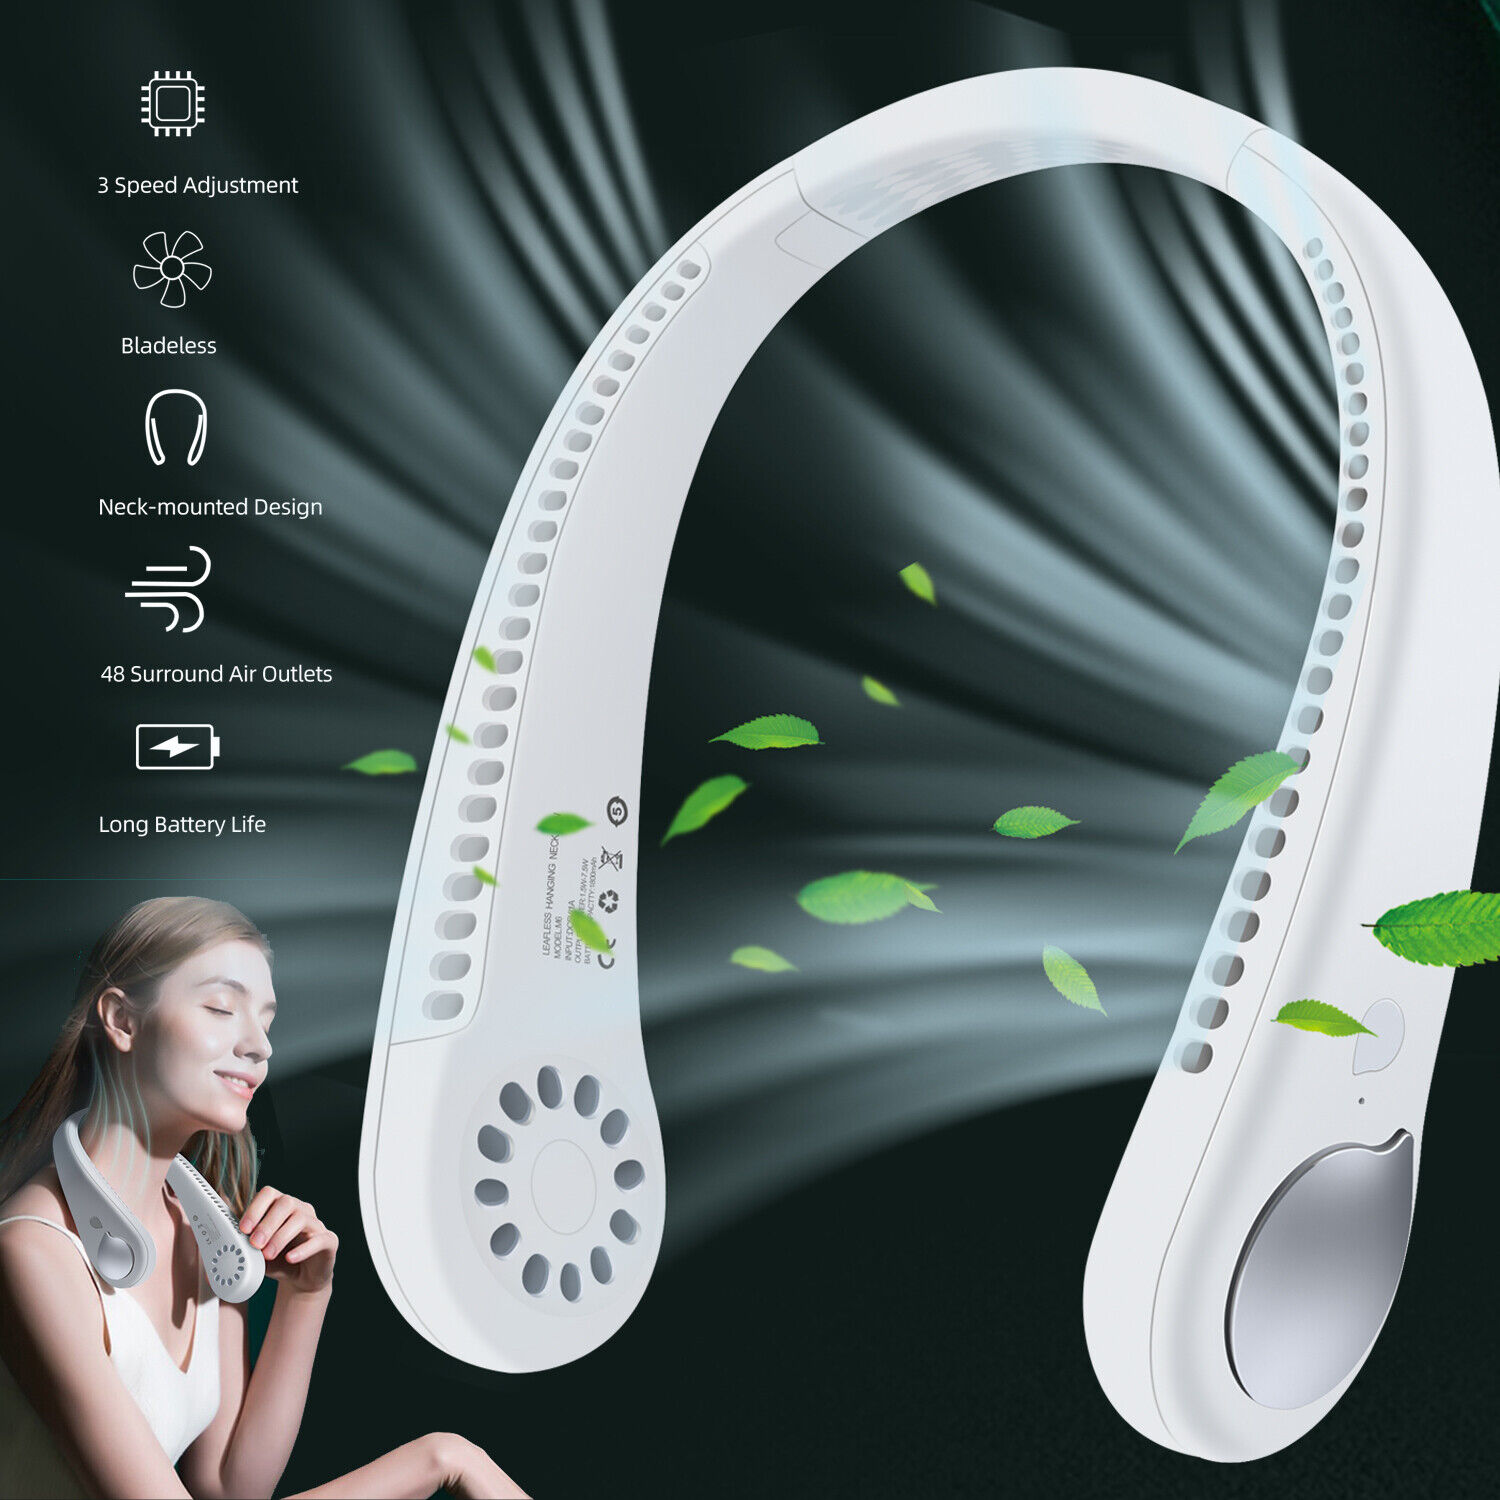 USB Portable Hanging Neck Fan Cooling Air Cooler Little Electric Air Conditioner Heating, Cooling & Air